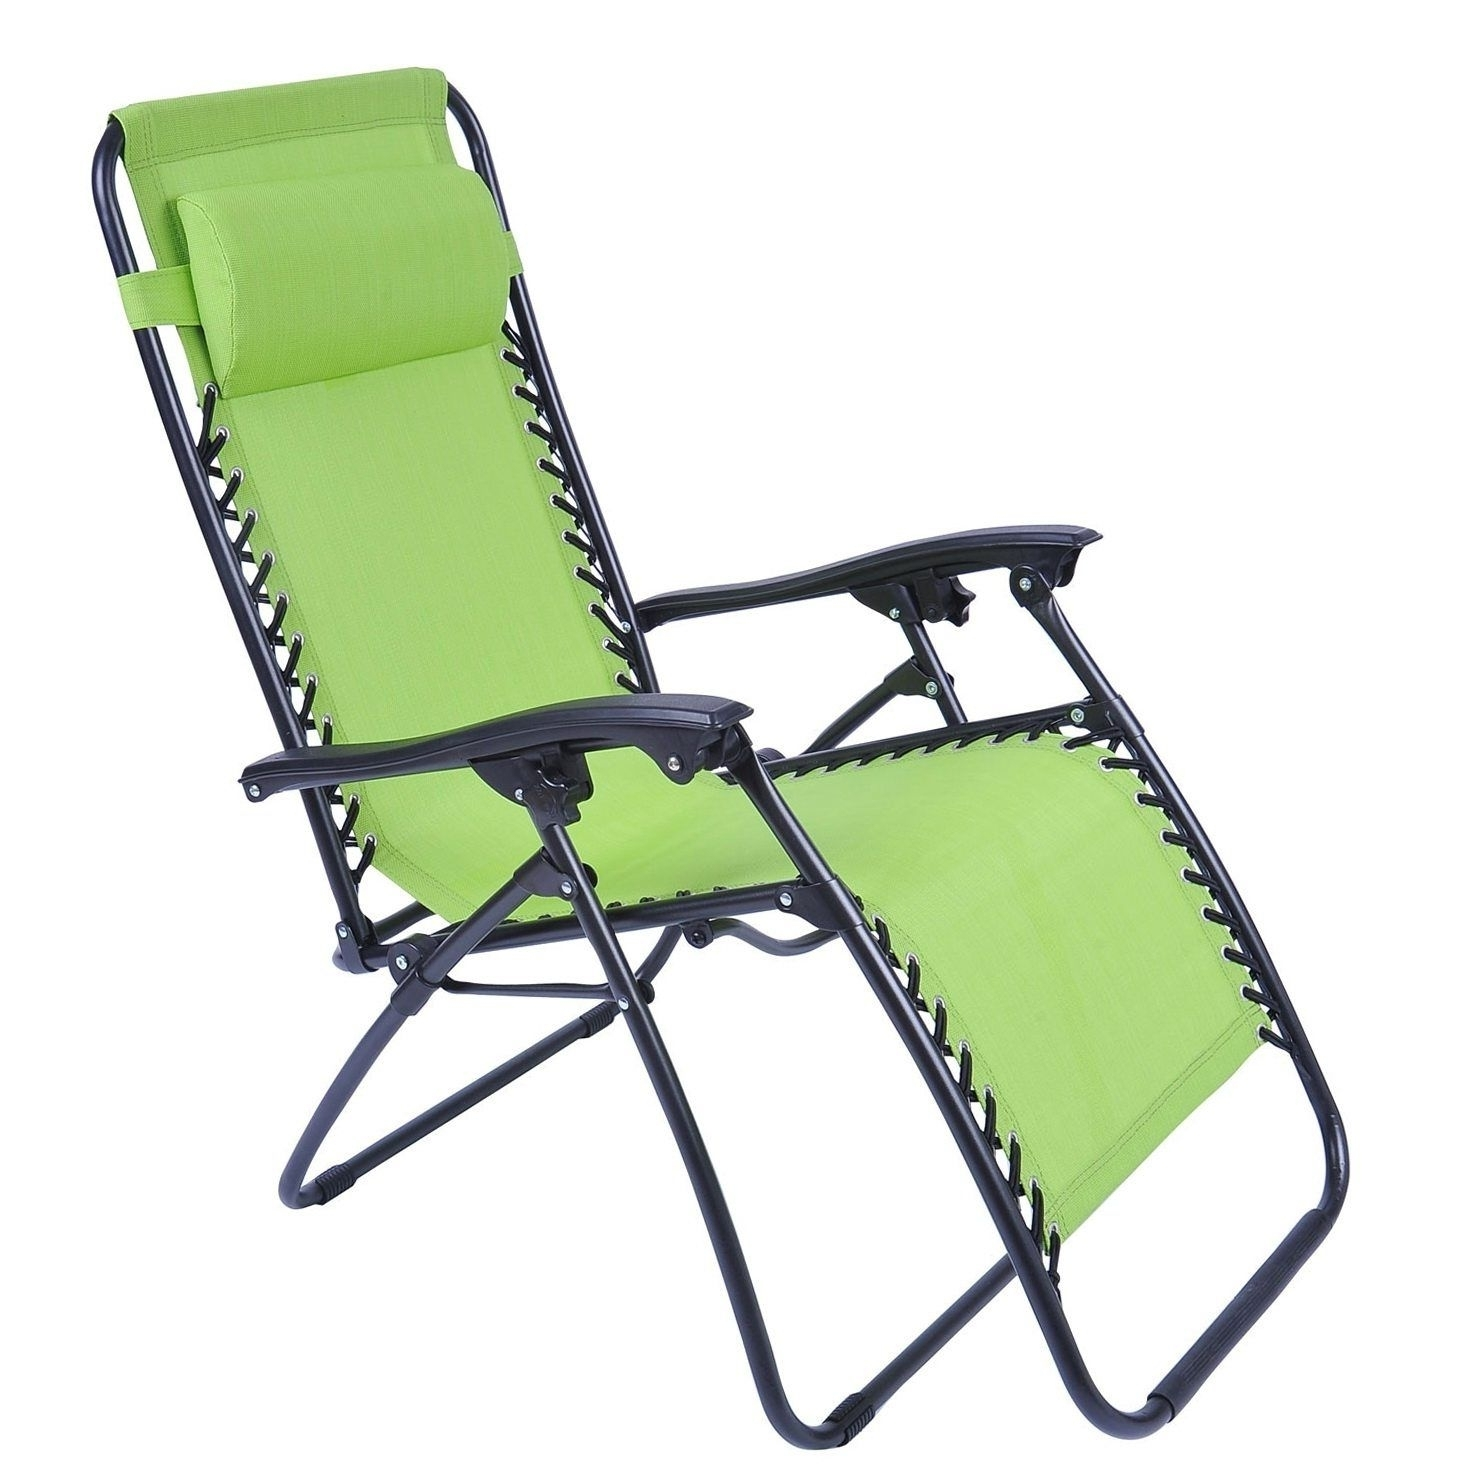 Most Recent Chaise Lounge Reclining Chairs For Outdoor With Lounge Chair Outdoor Folding Folding Chaise Lounge Chair Patio (View 11 of 15)